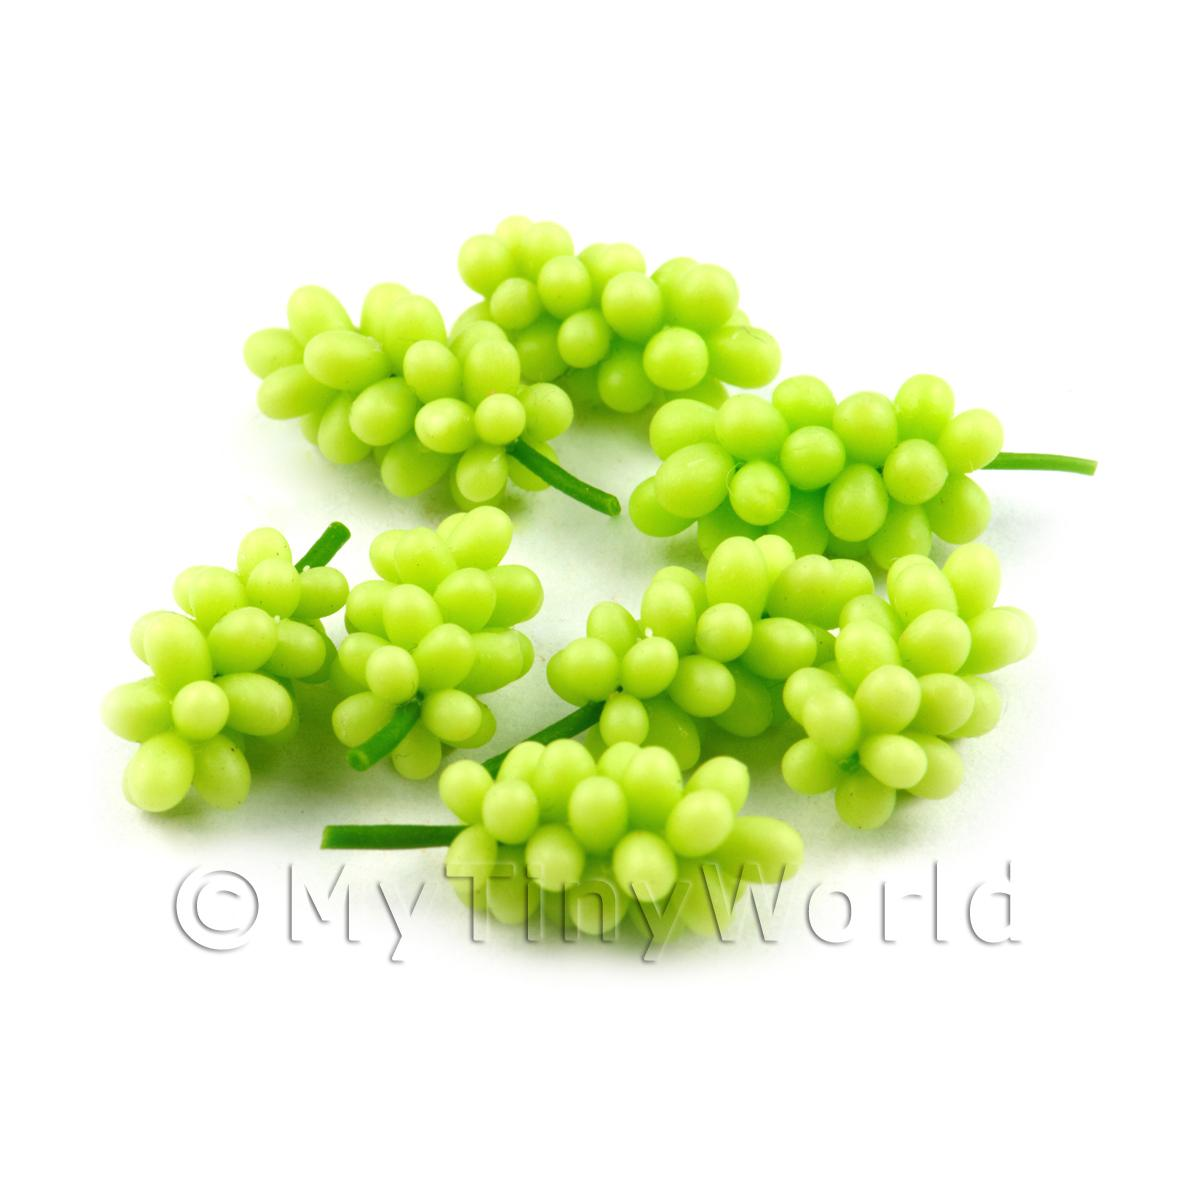 Dolls House Miniature Bunch of Green Seedless Grapes